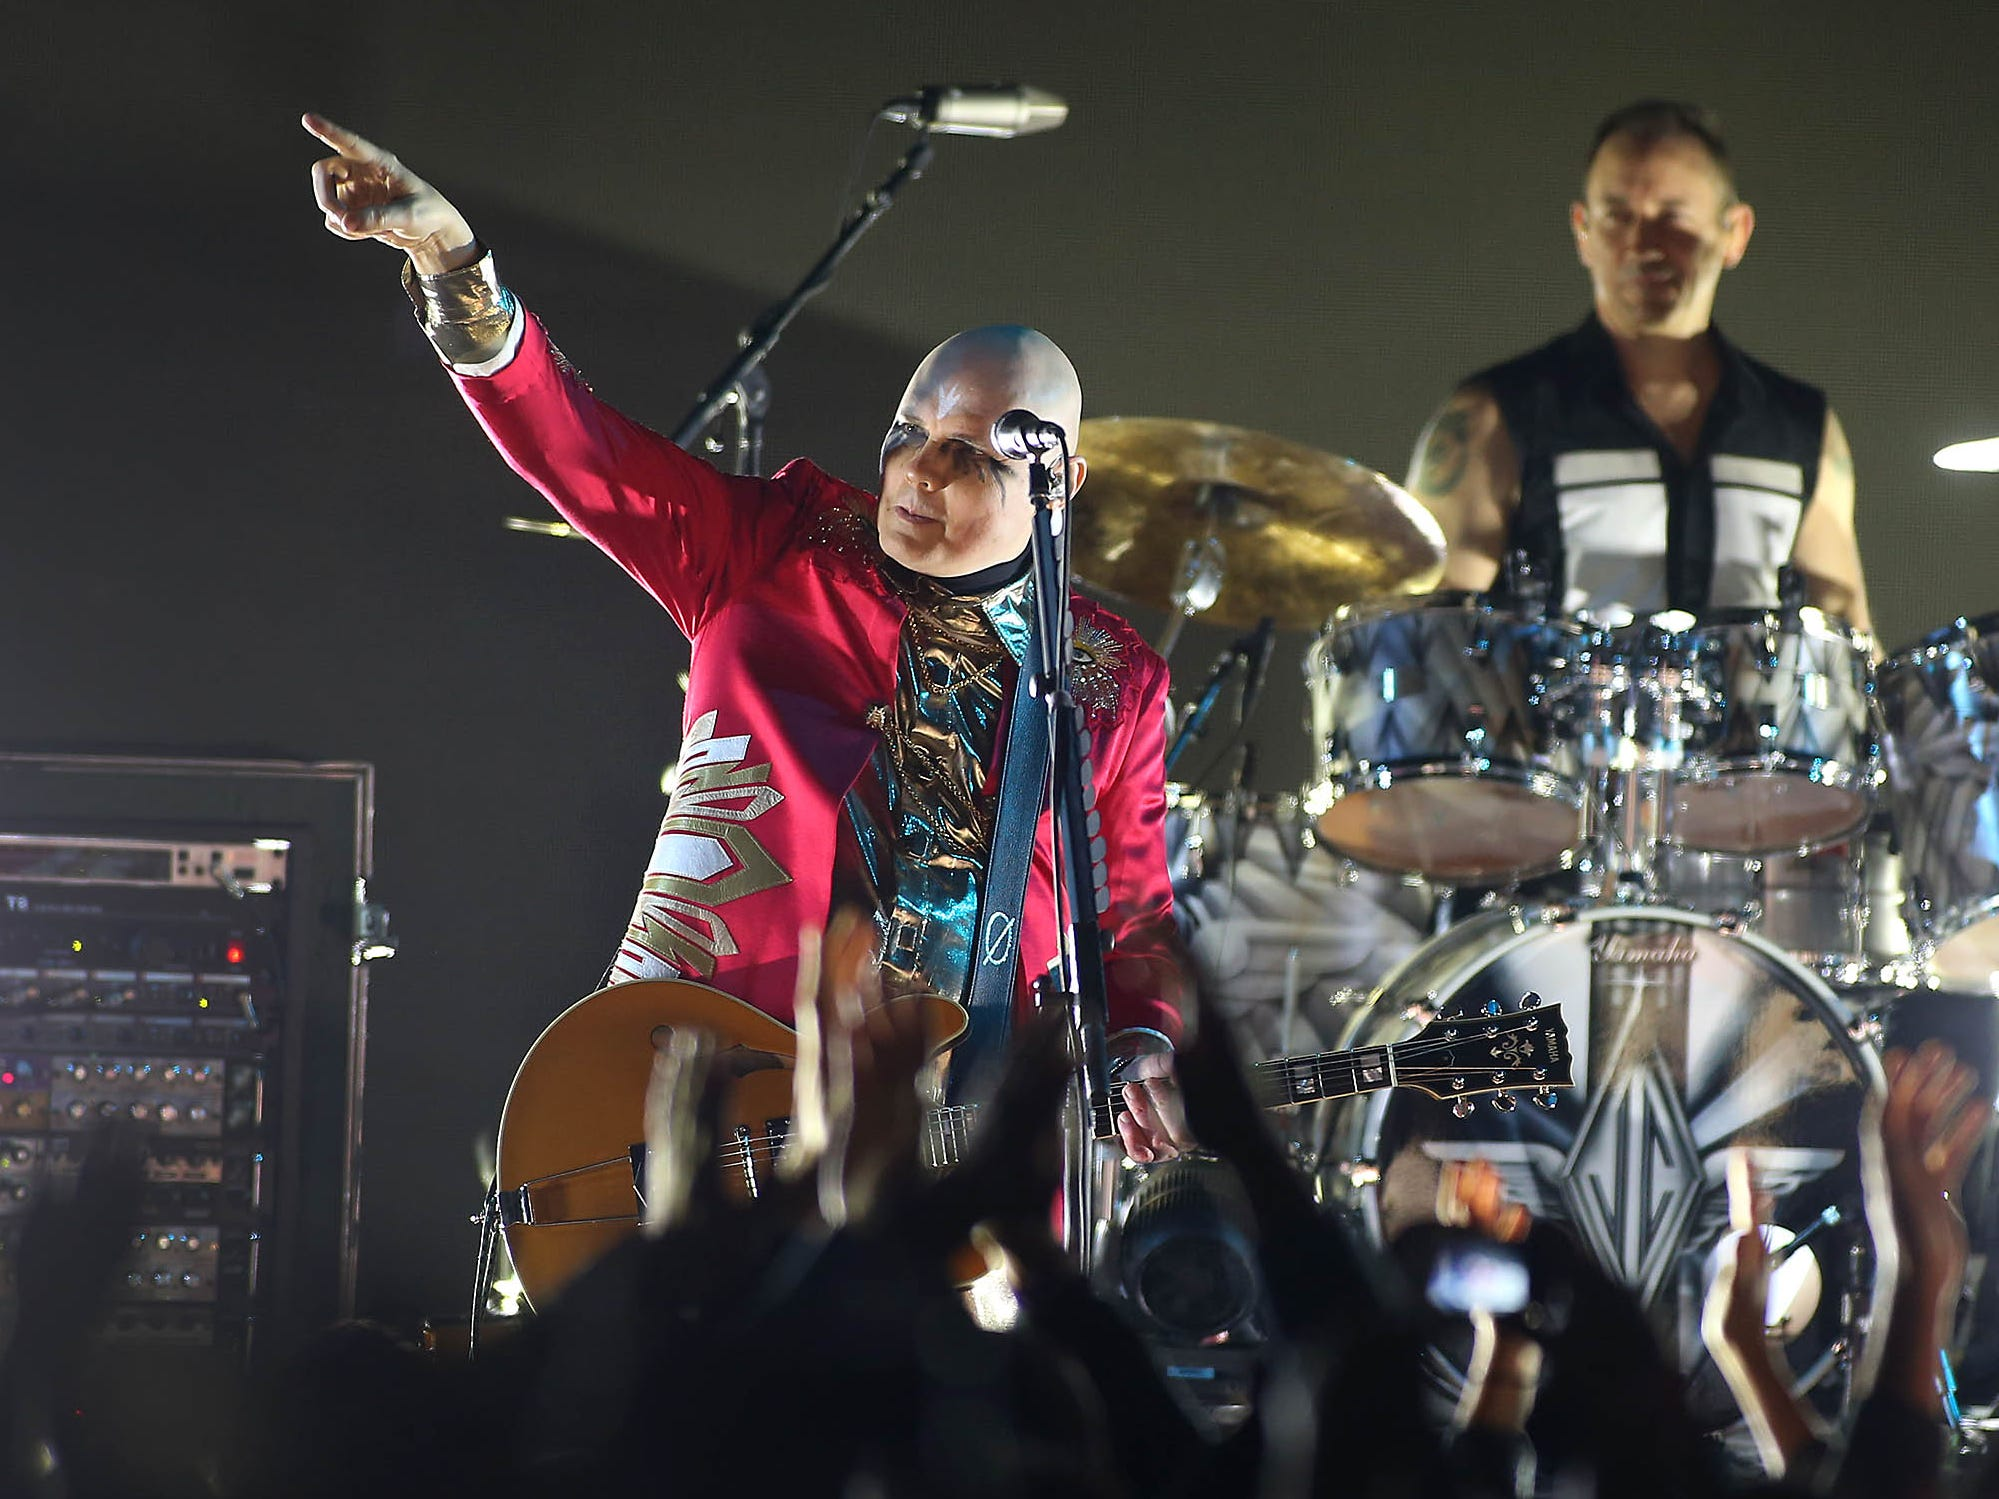 Smashing Pumpkins perform at Mesa Amphitheatre in Mesa on Friday, Dec. 7, 2018.